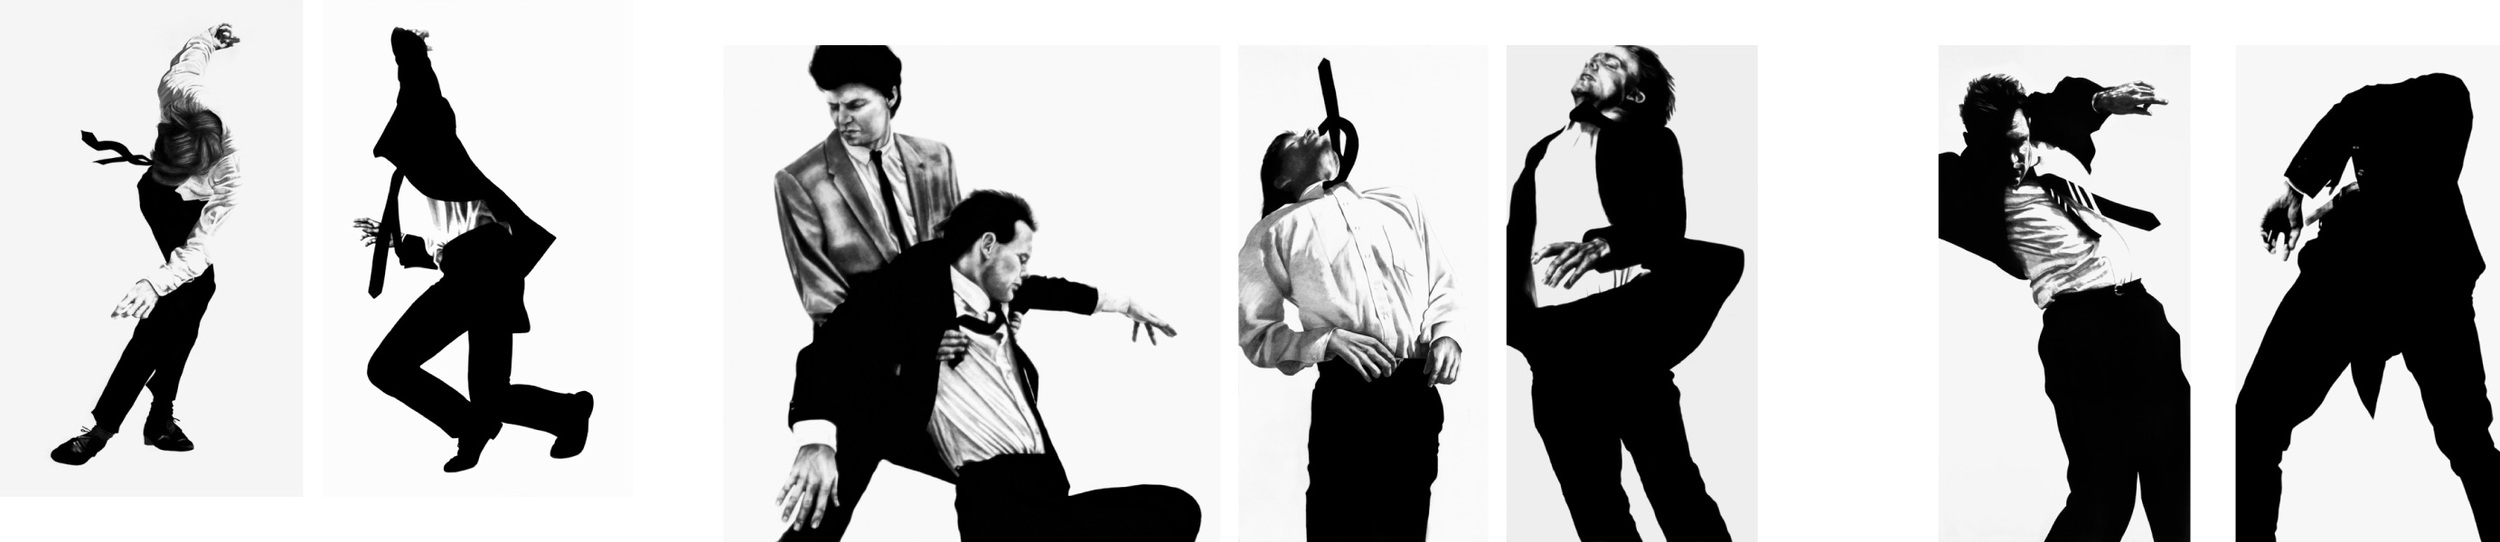 Robert Longo Men in Cities